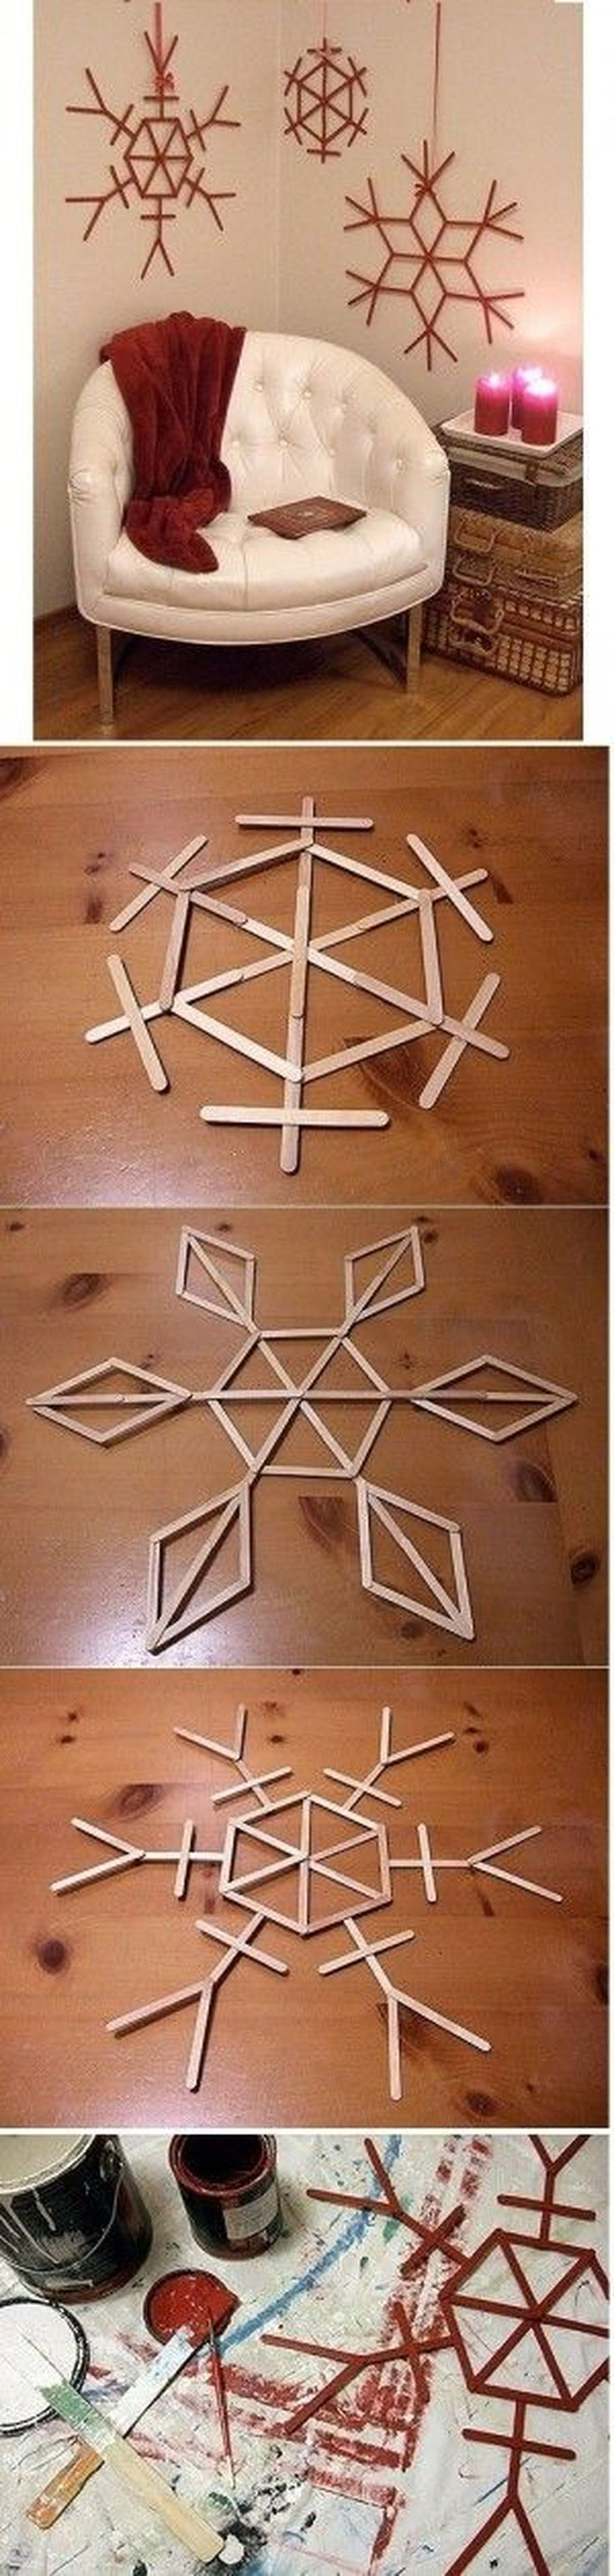 awesome 54 Cheap and Creative DIY Christmas Decoration Ideas You Should Try for Your Home  https://decoralink.com/2017/10/02/54-cheap-creative-diy-christmas-decoration-ideas-try-home/